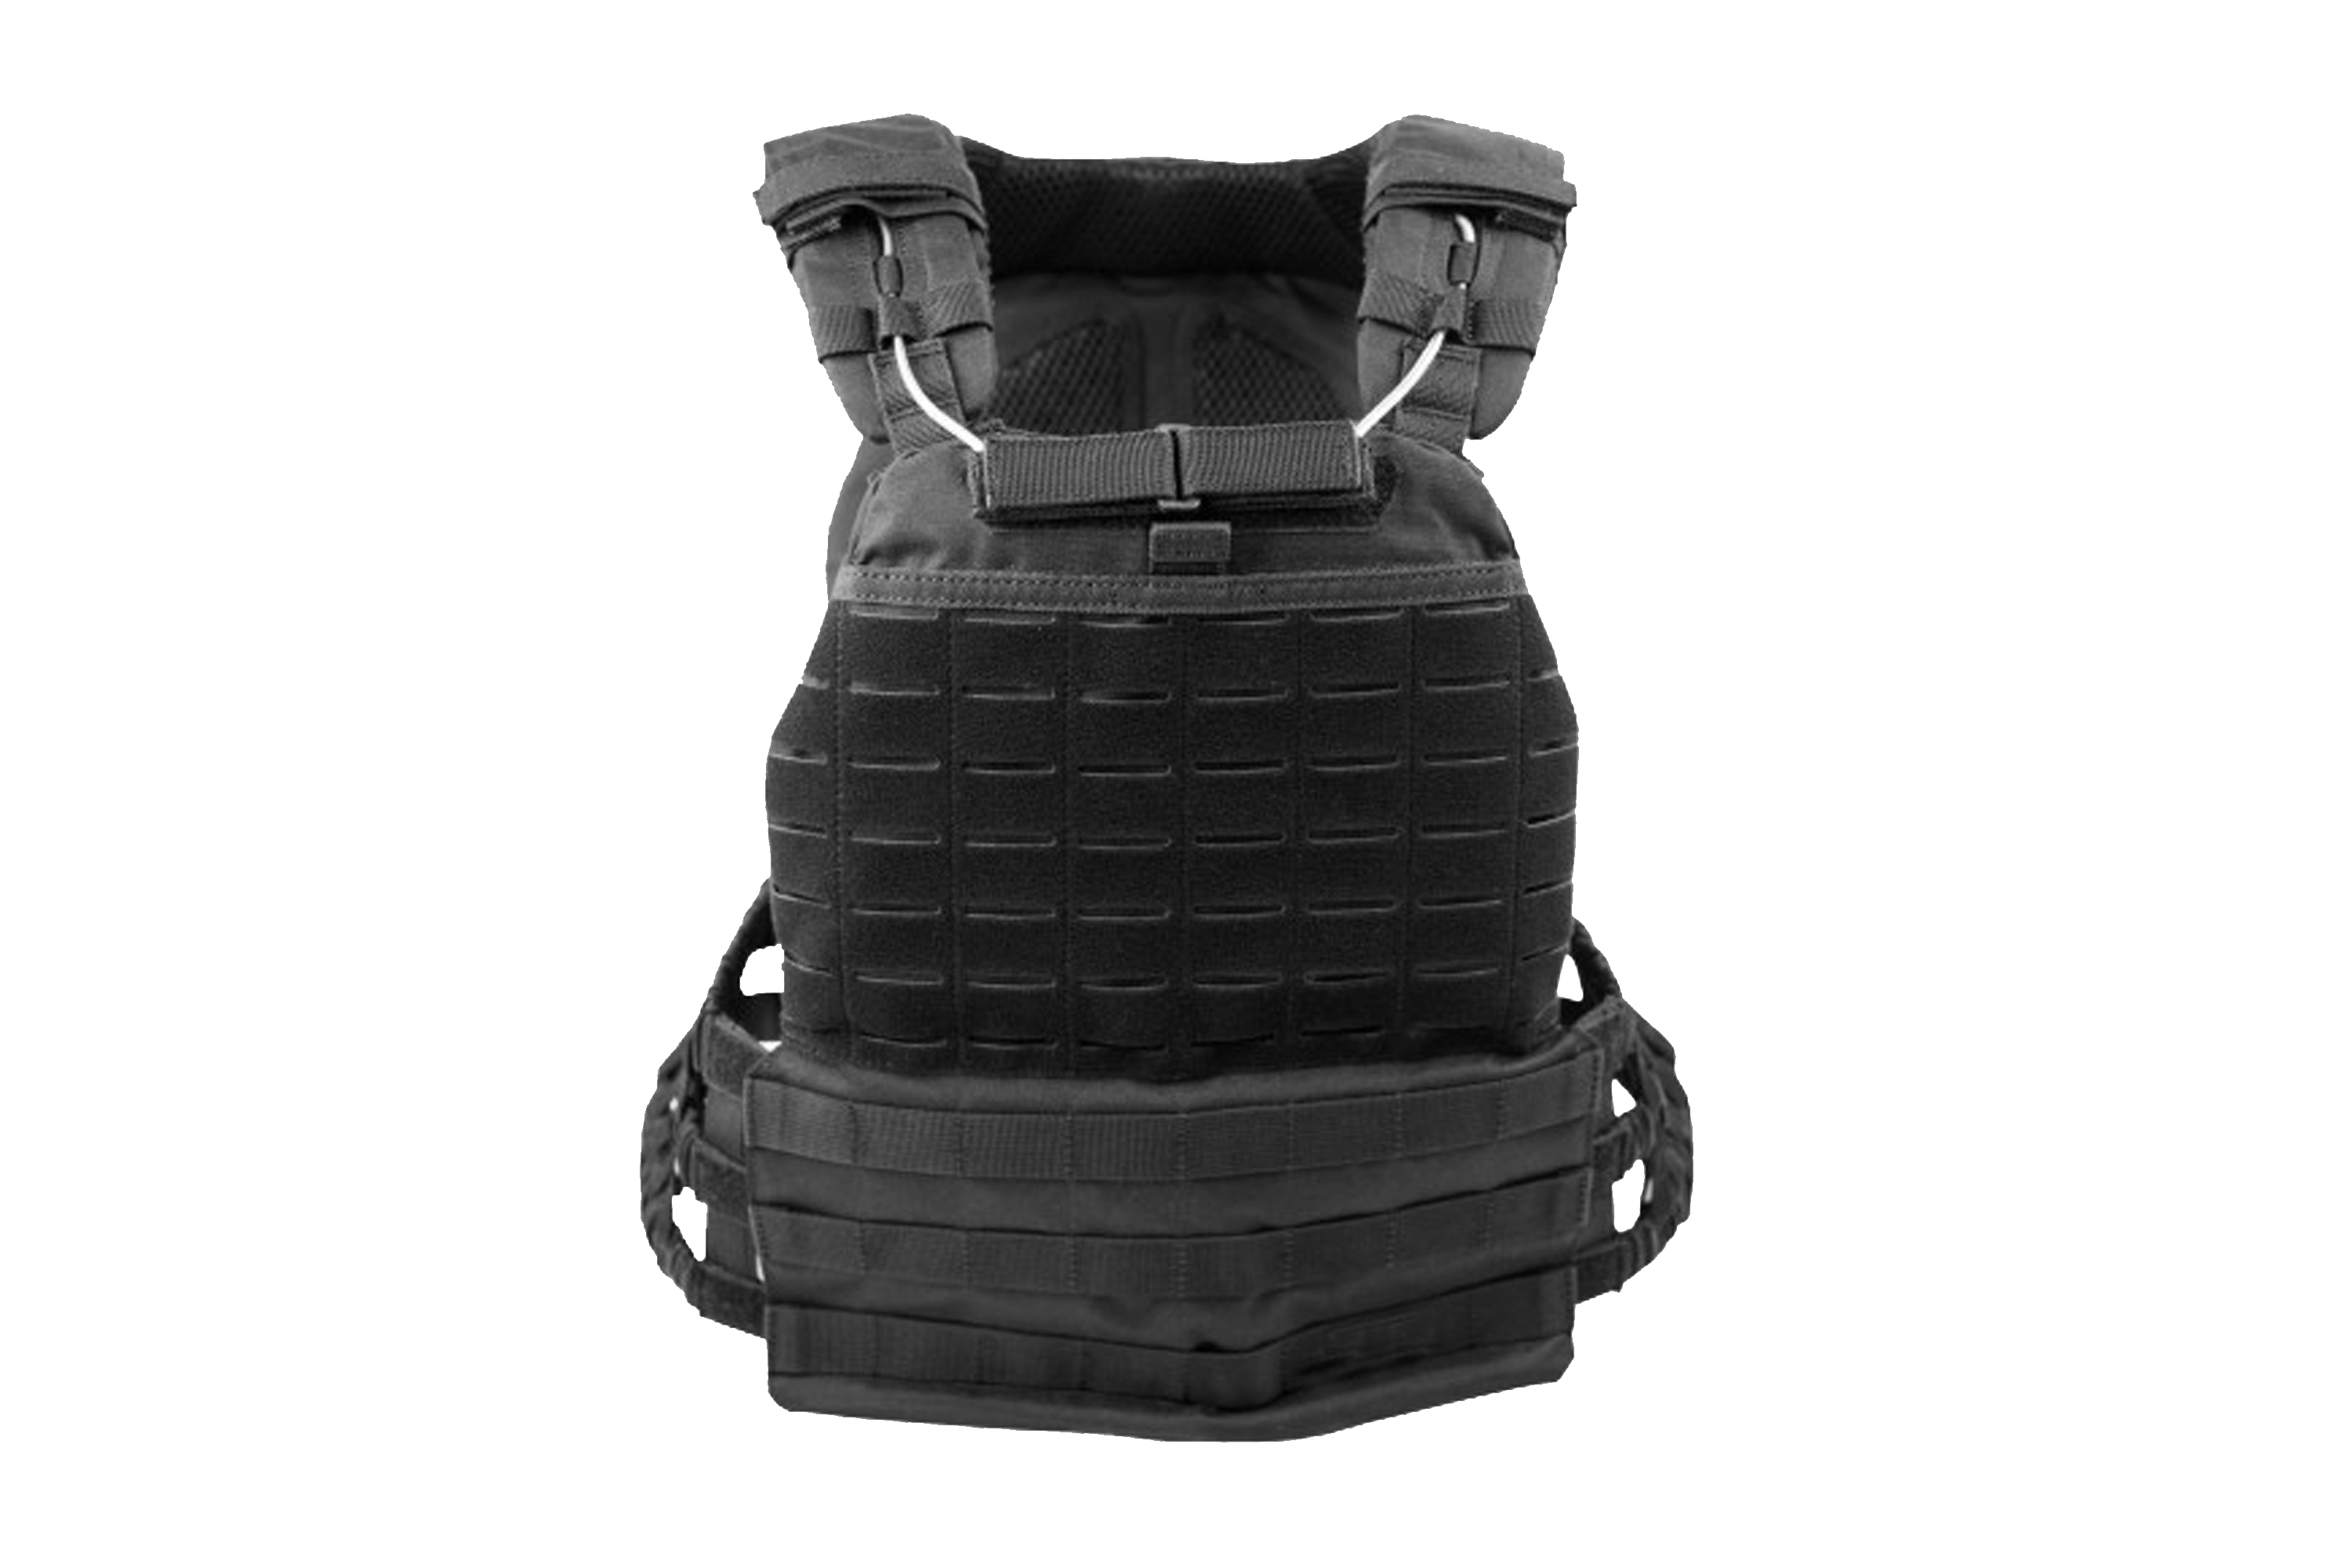 crossfit gym plate weight vest